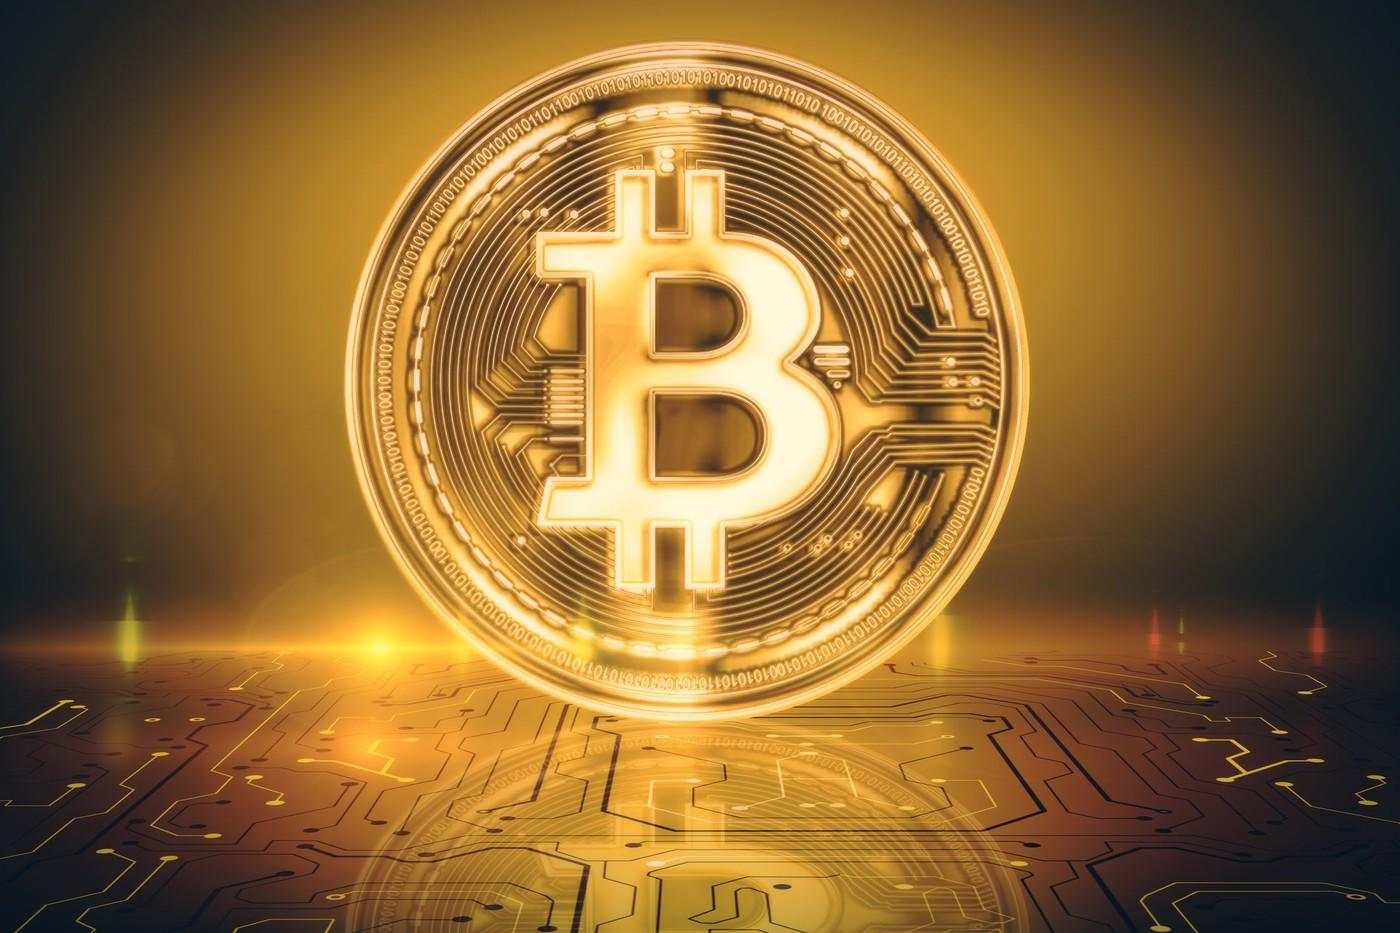 Forget Bitcoin! Buy These 3 Tech Stocks Instead